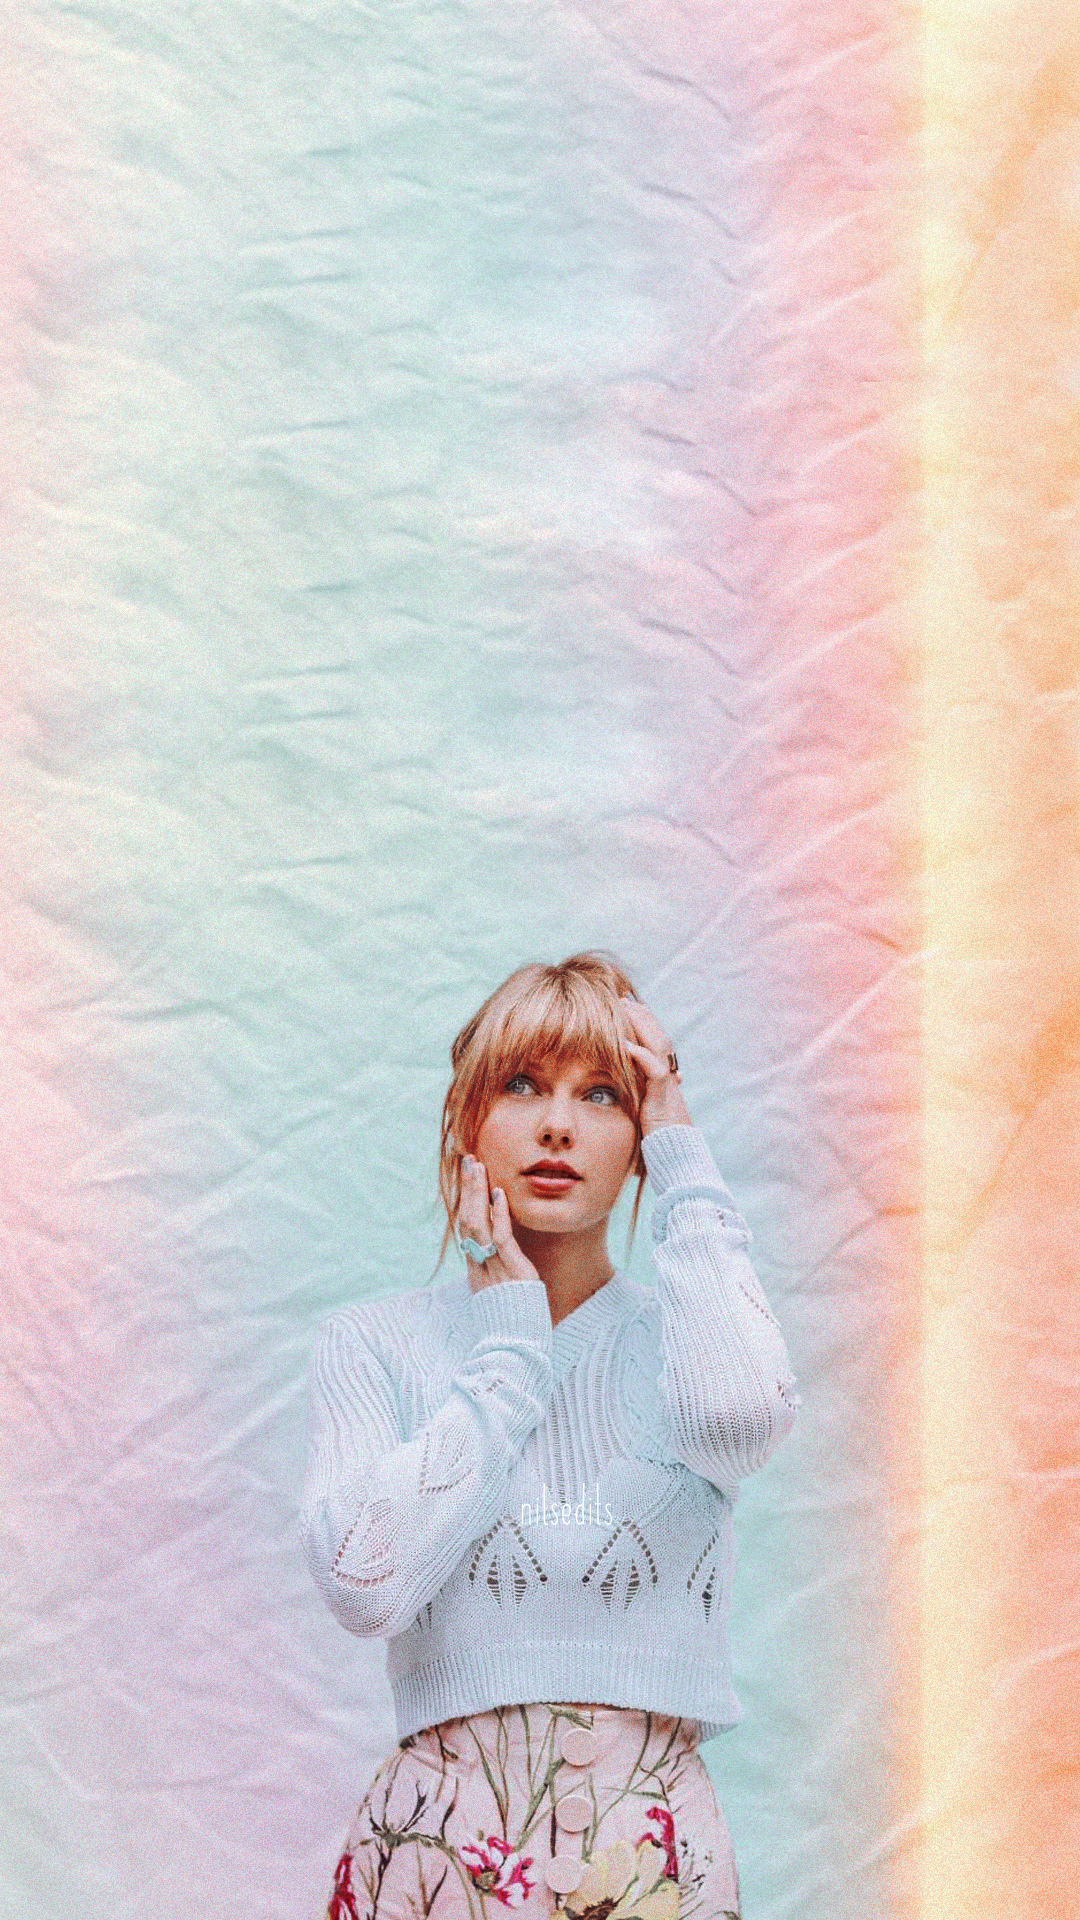 Pin By Teyra Helena On Celebrity Taylor Swift Wallpaper Taylor